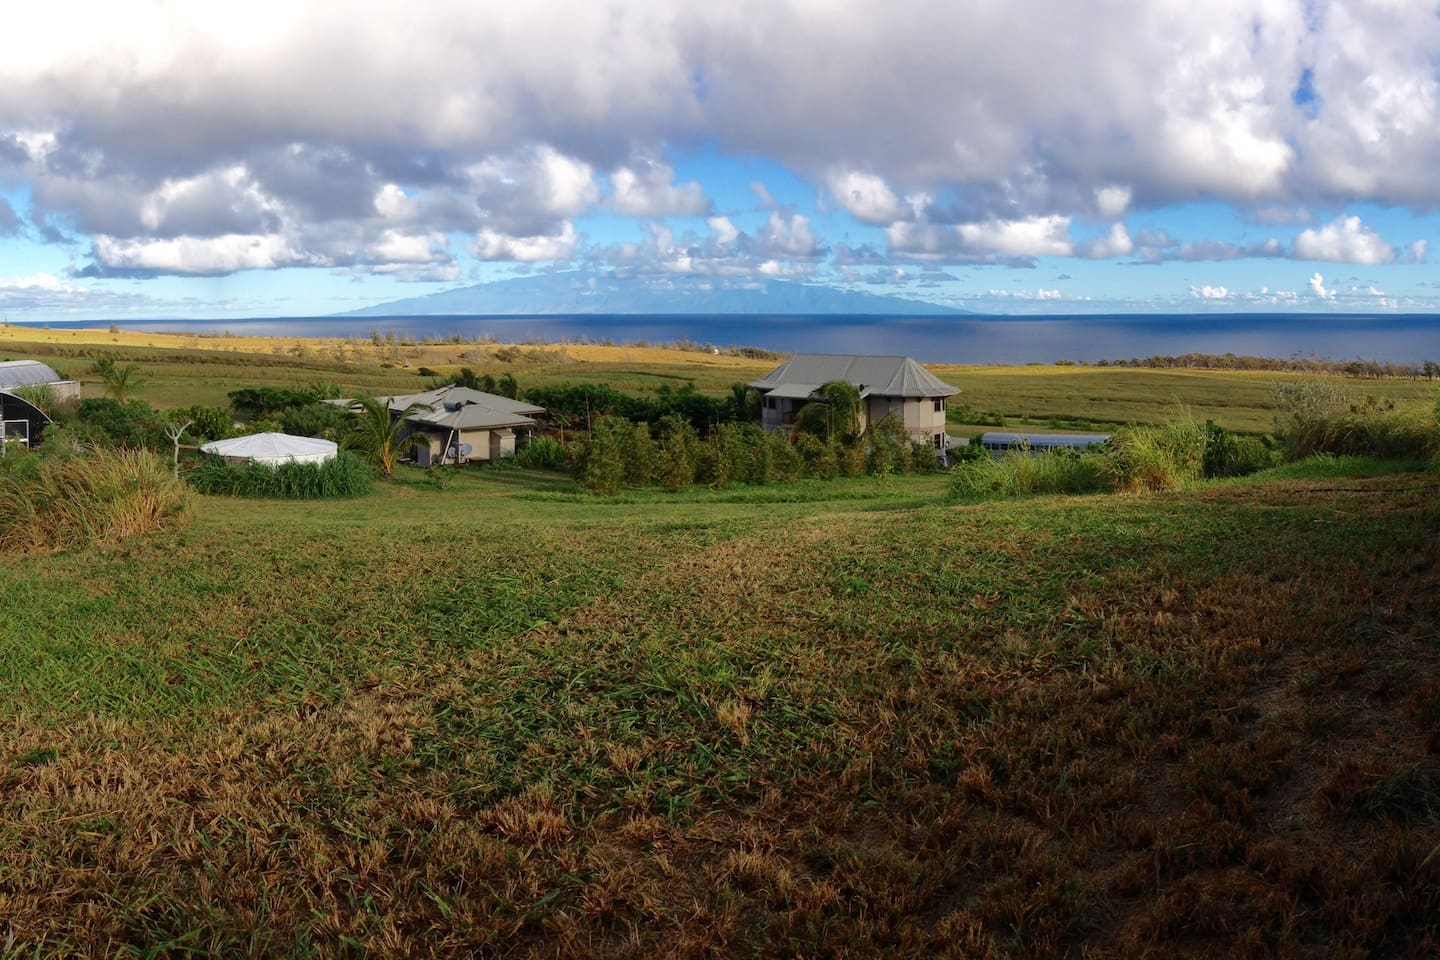 This is an overview of our property with Maui in the distance